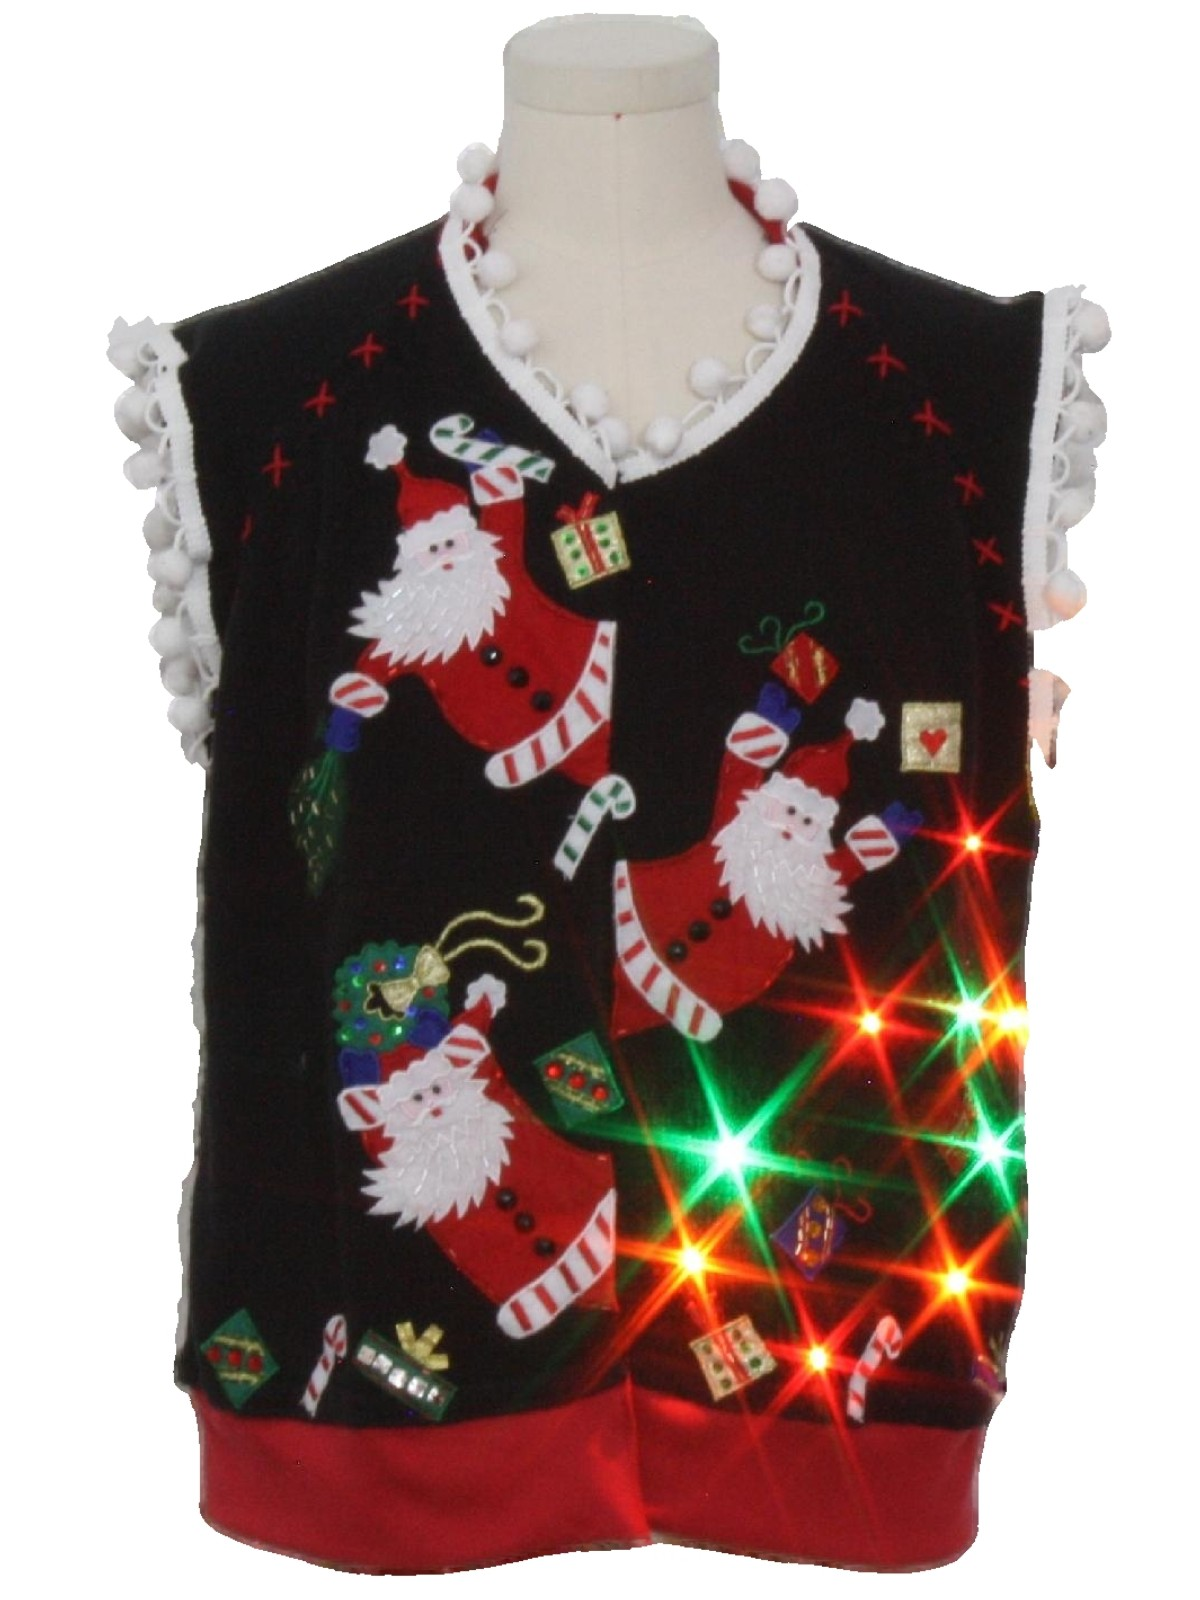 hand embellished multicolor lightup ugly christmas sweater vest tiara international unisex black background cotton ramie blend button front ugly